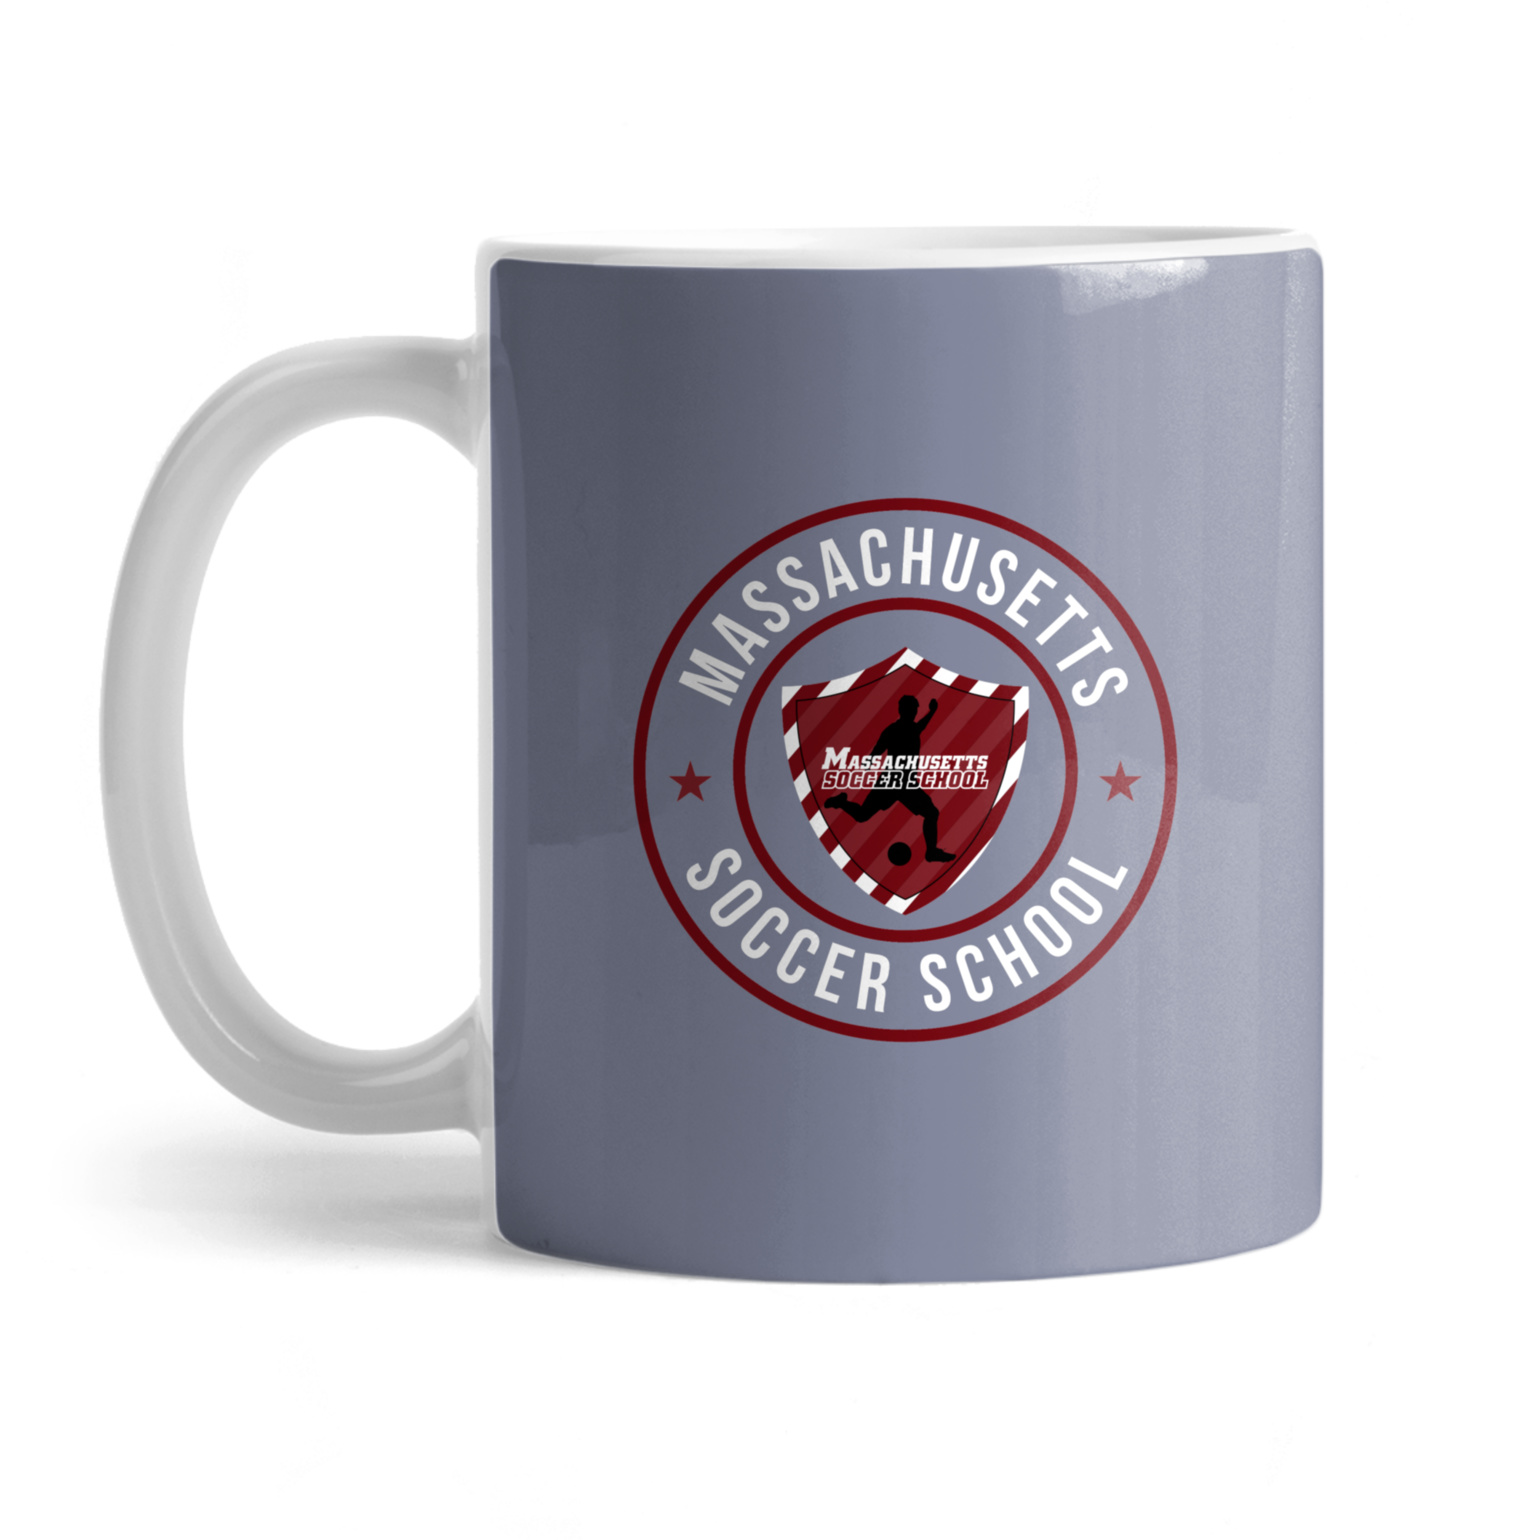 Massachusetts Soccer School Mug